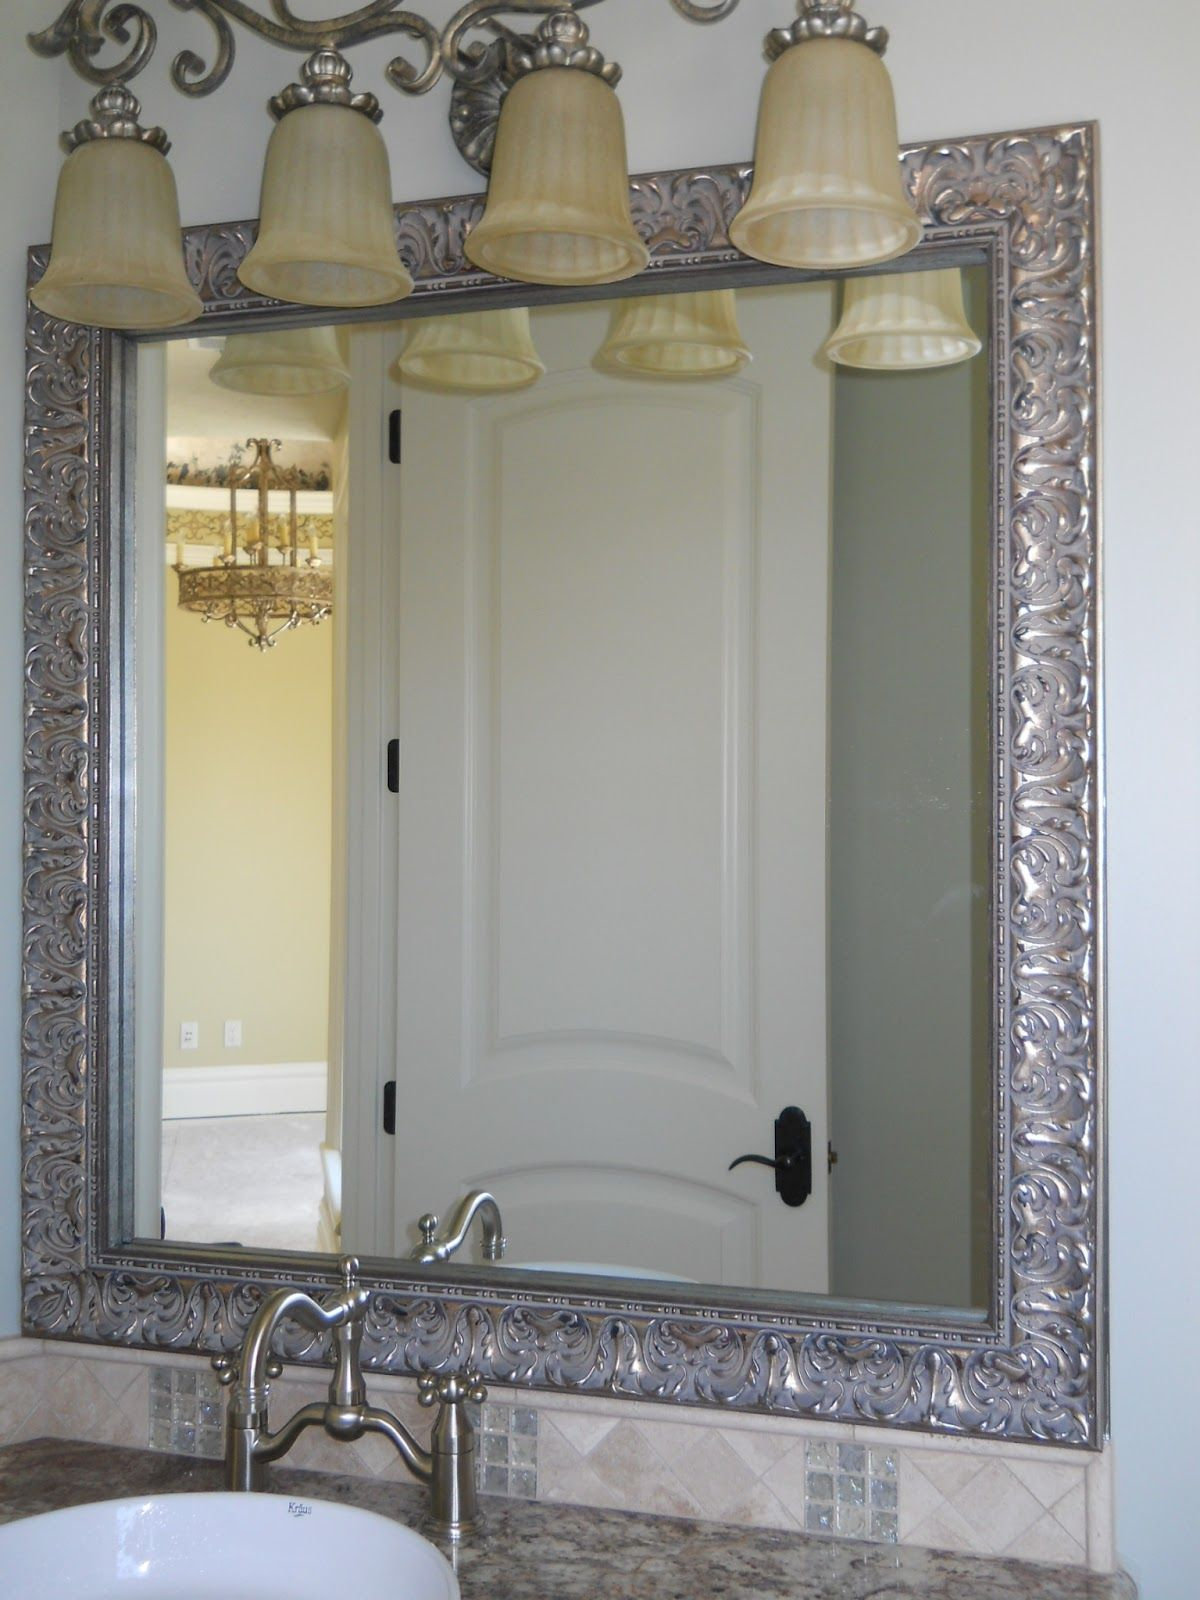 Mirror Frame Kit Reflected Design Custom Mirror Frame Kits Bathroom Mirror Kits Bathroom